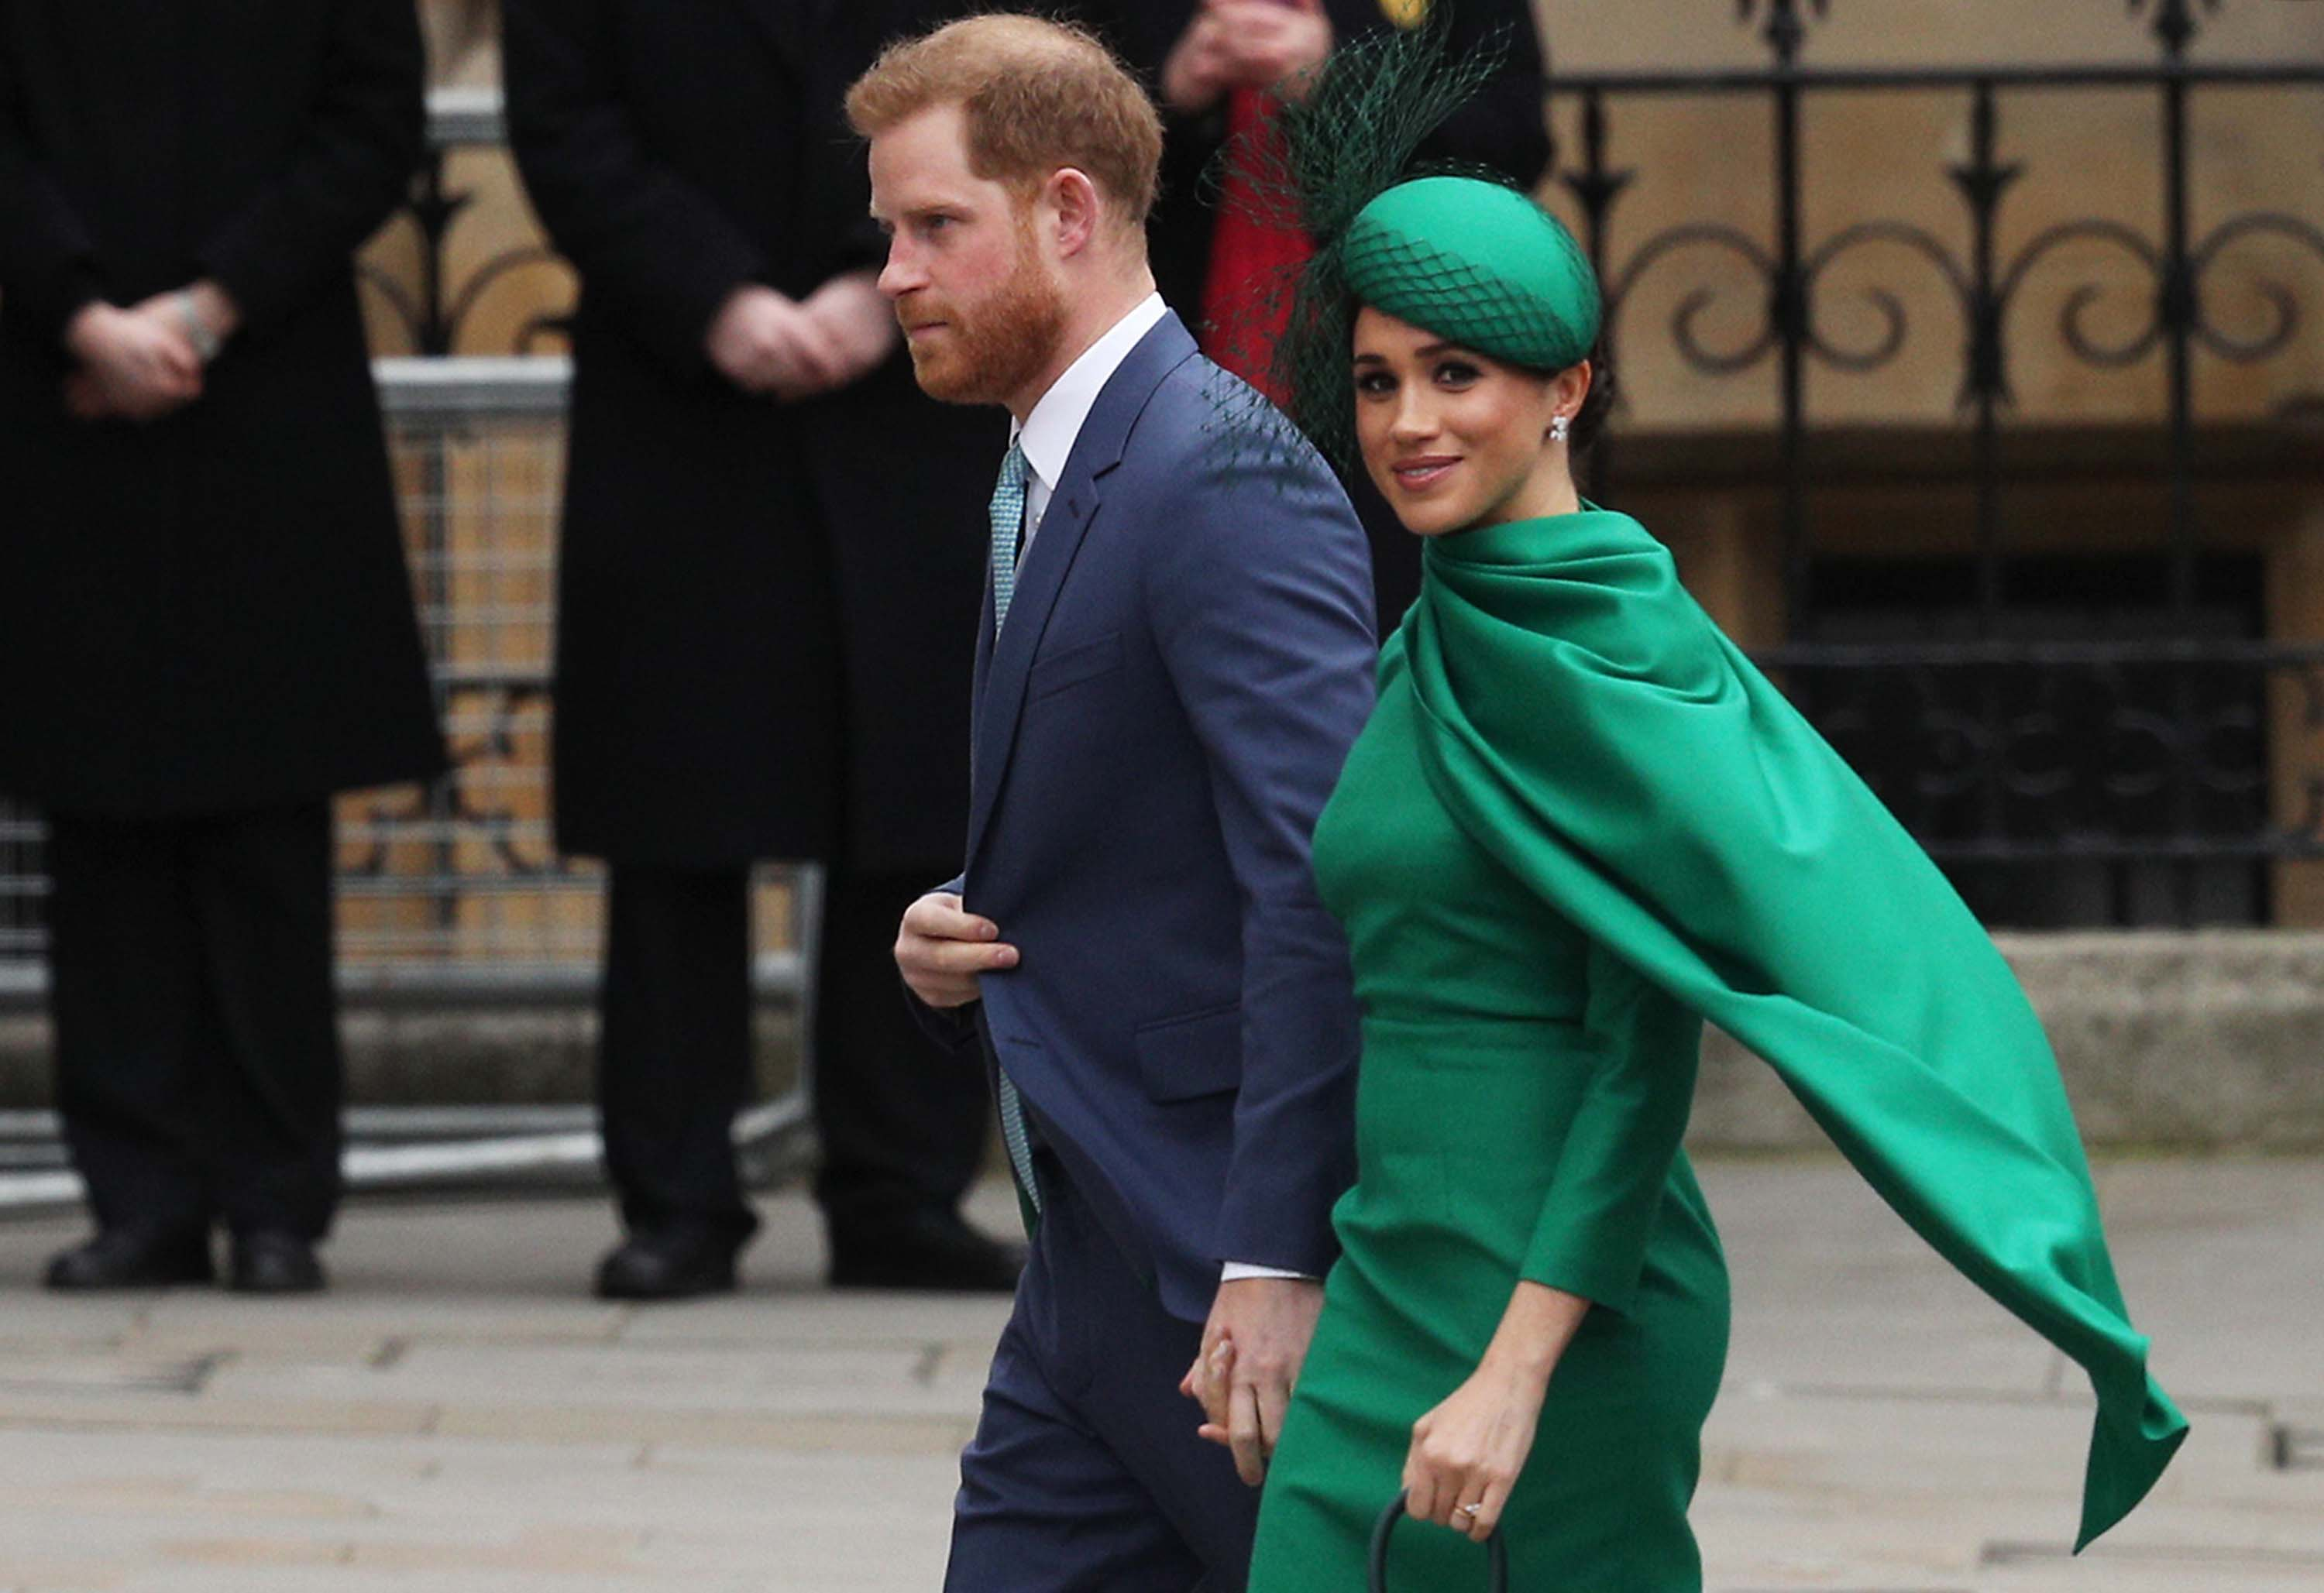 Harry and Meghan pictured as they arrive to attend the annual Commonwealth Day Service at Westminster Abbey in London on March 9, 2020.